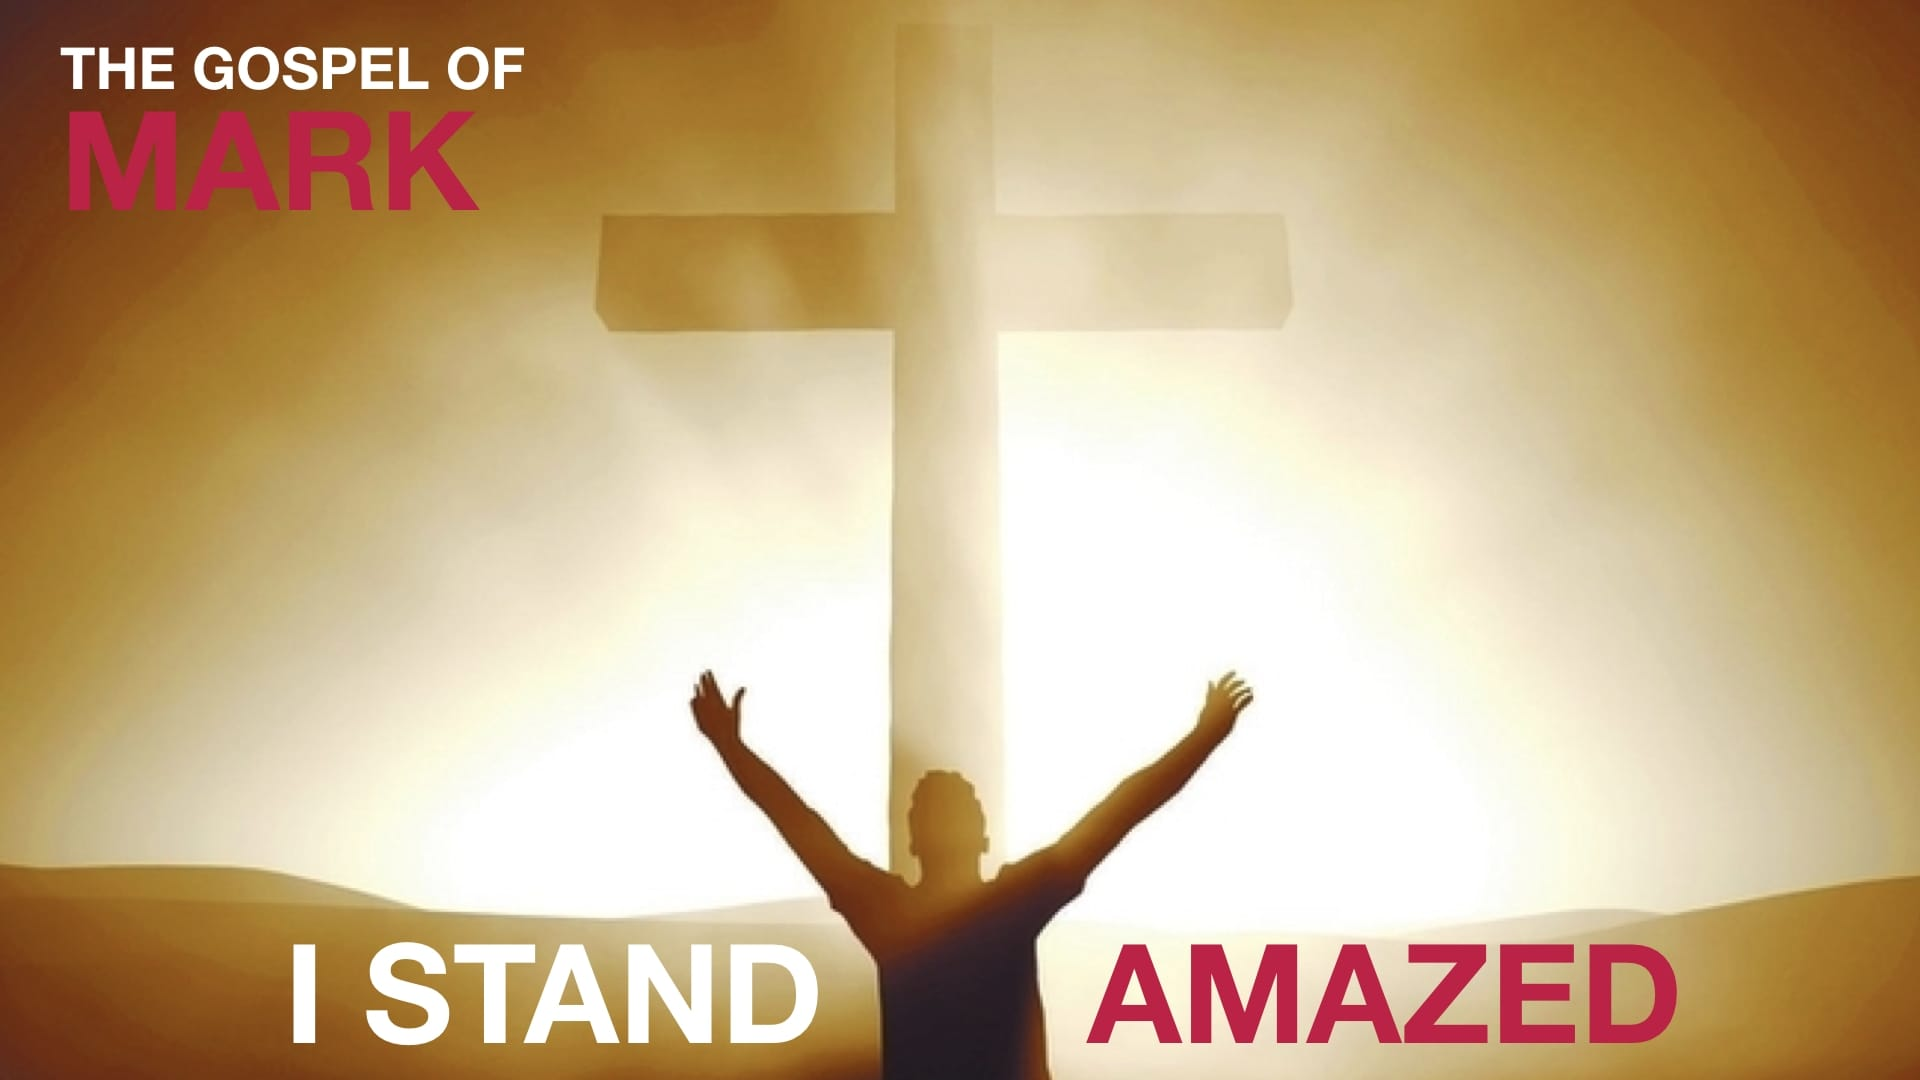 I Stand Amazed: Amazing Strength / Mark 3:20-35